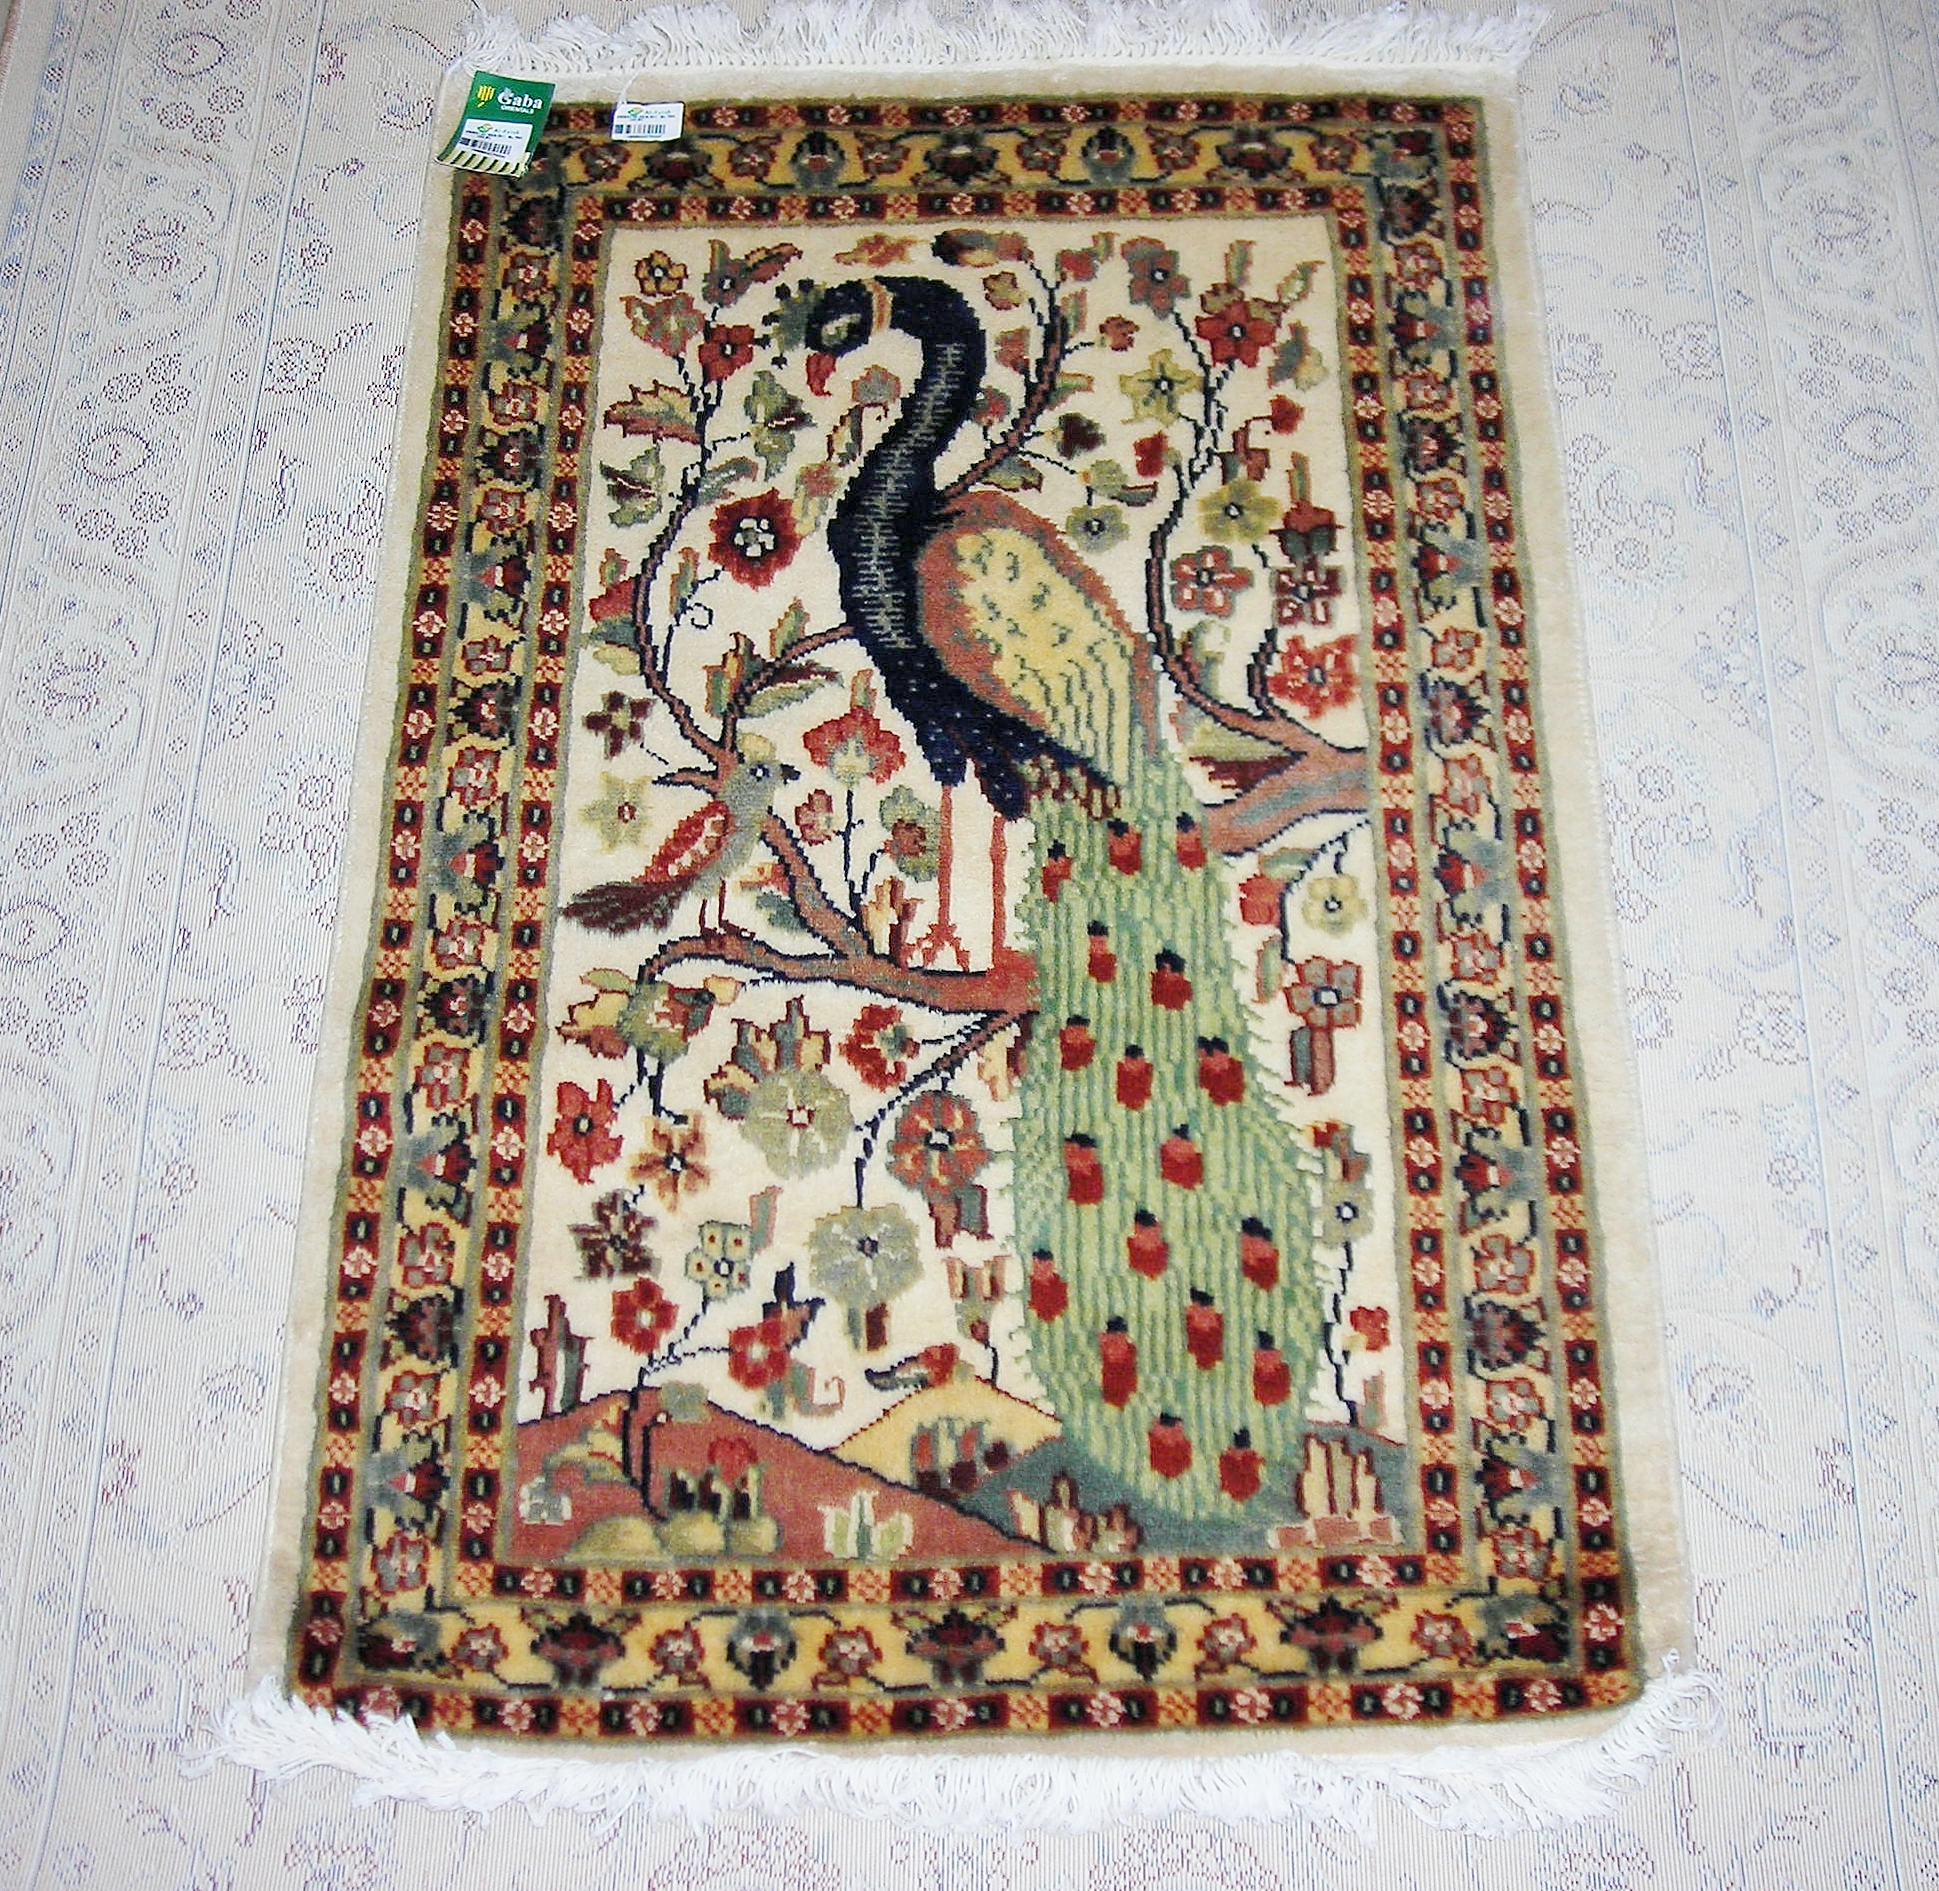 Peacock silk pictorial 2x3 ft persian rug no. 6735